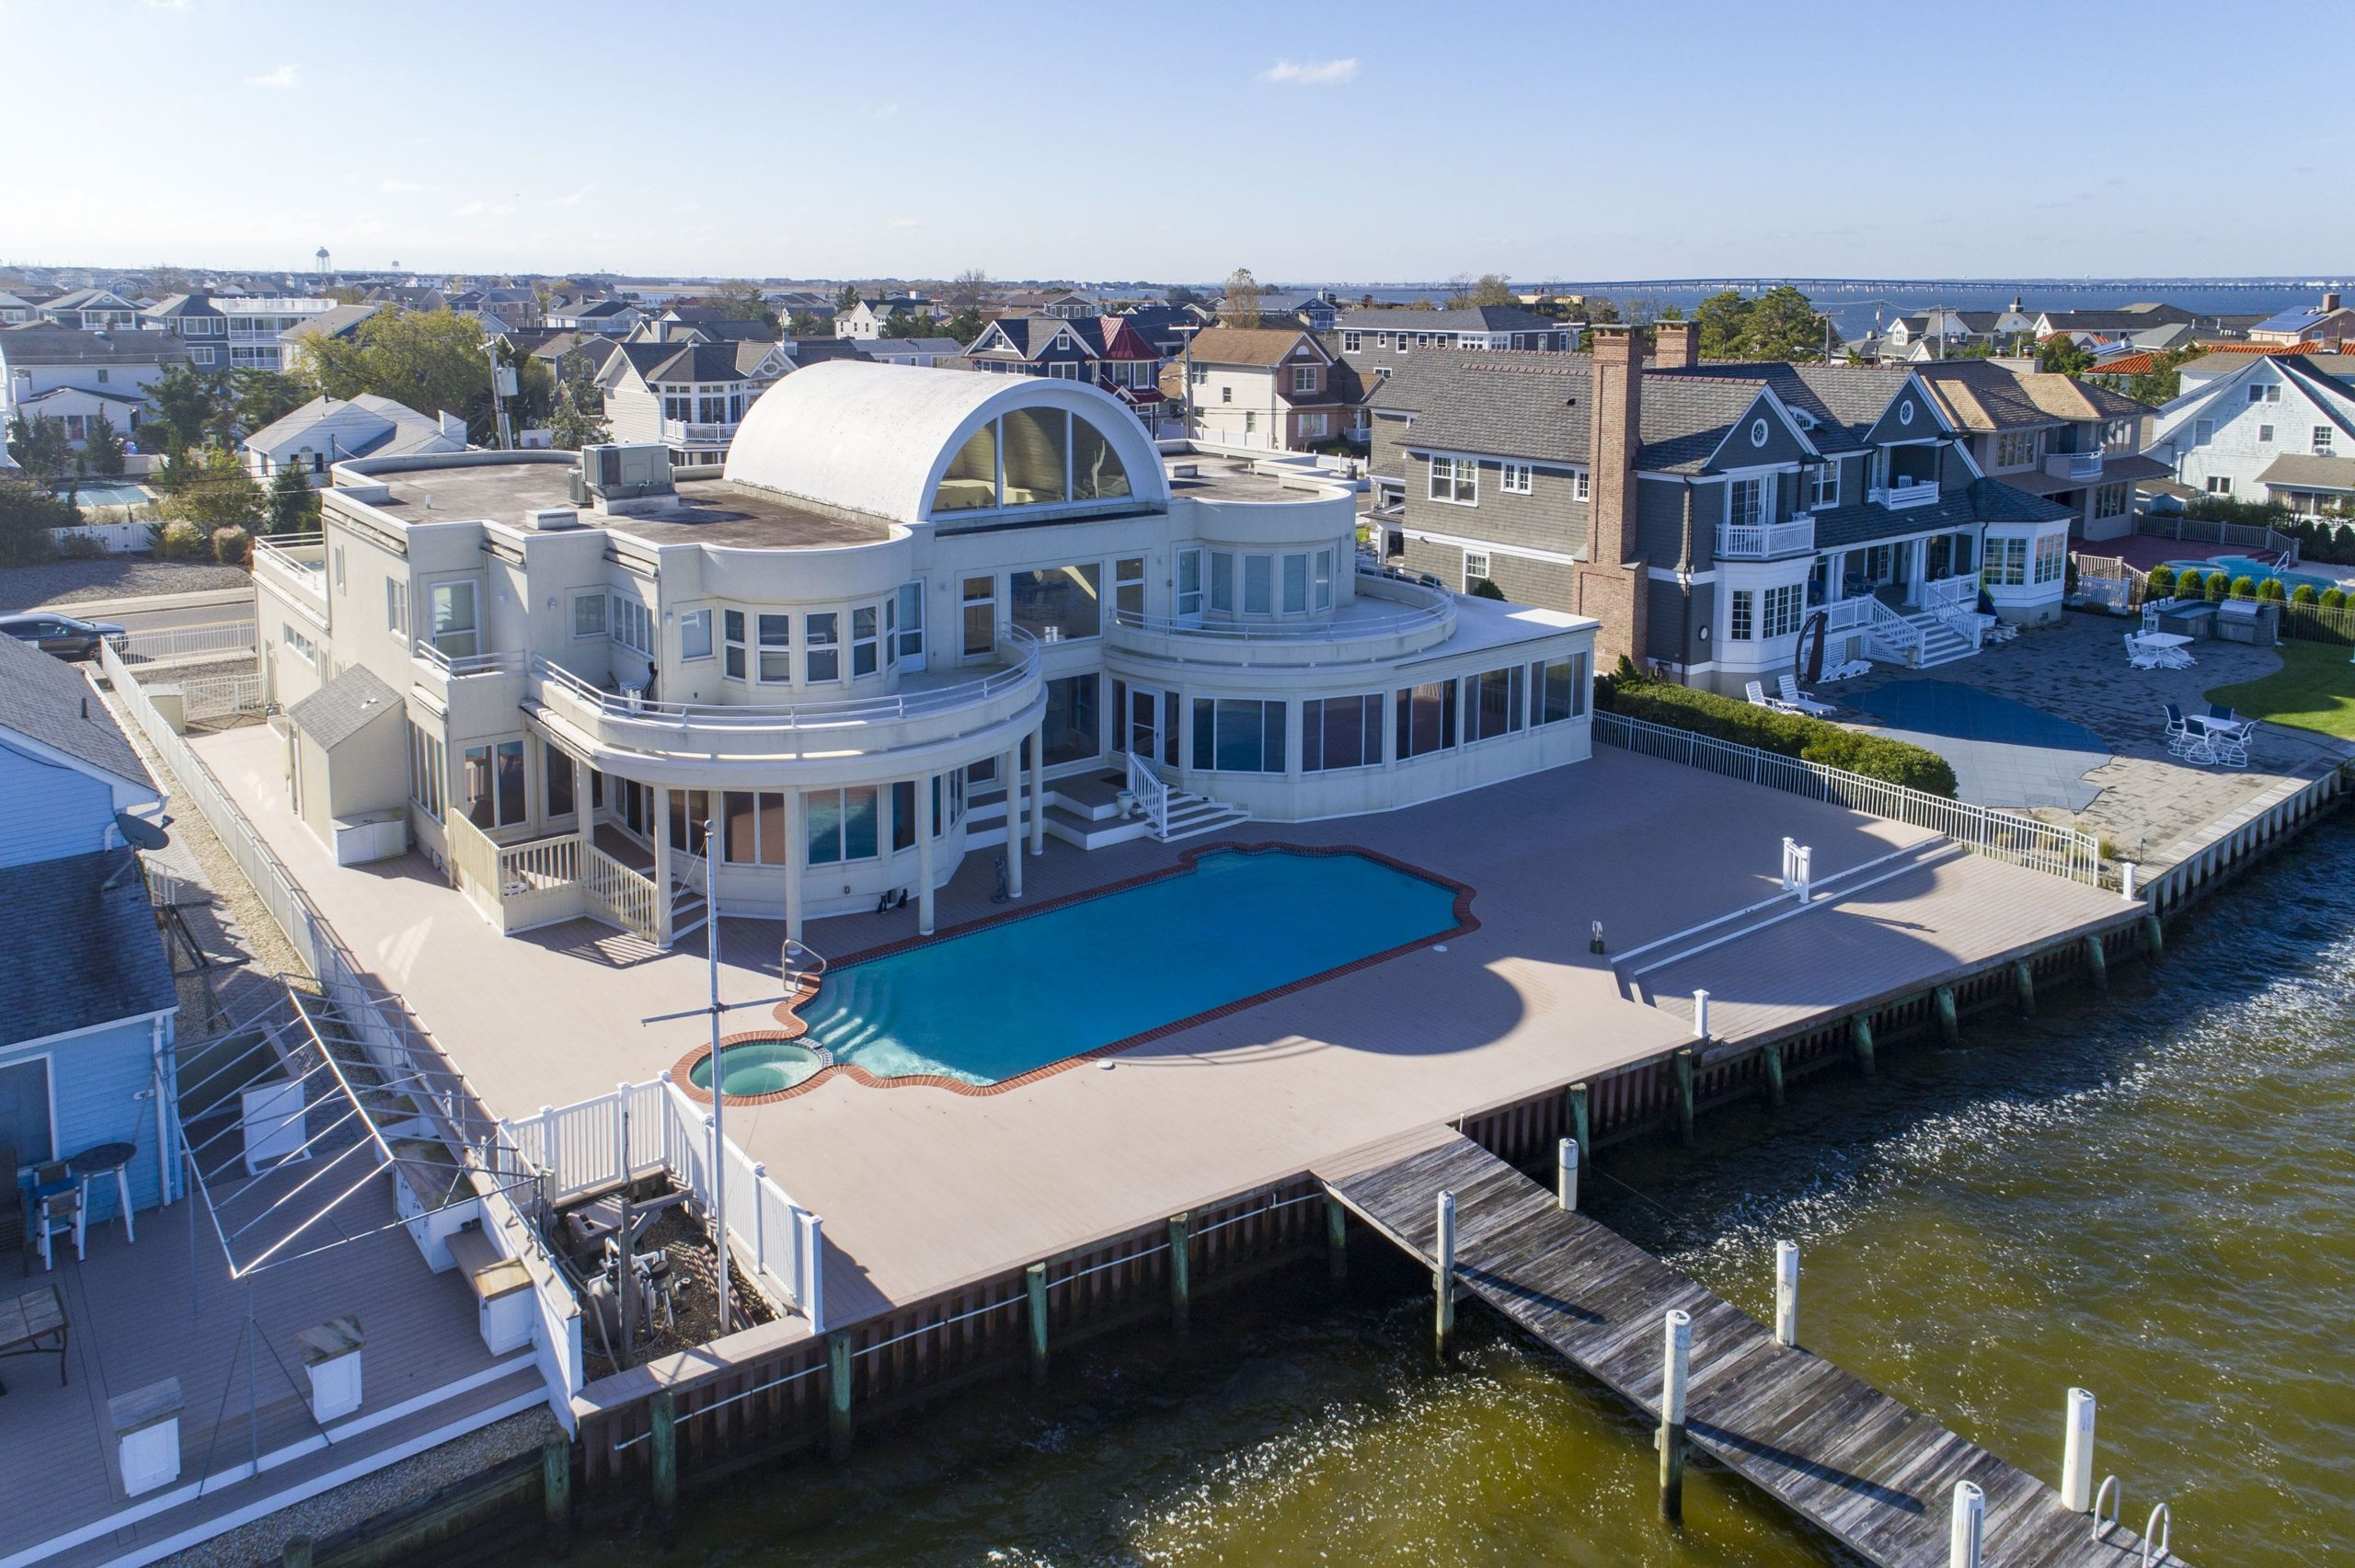 Joe Pesci's contemporary waterfront mansion now for sale at $6.5 million.